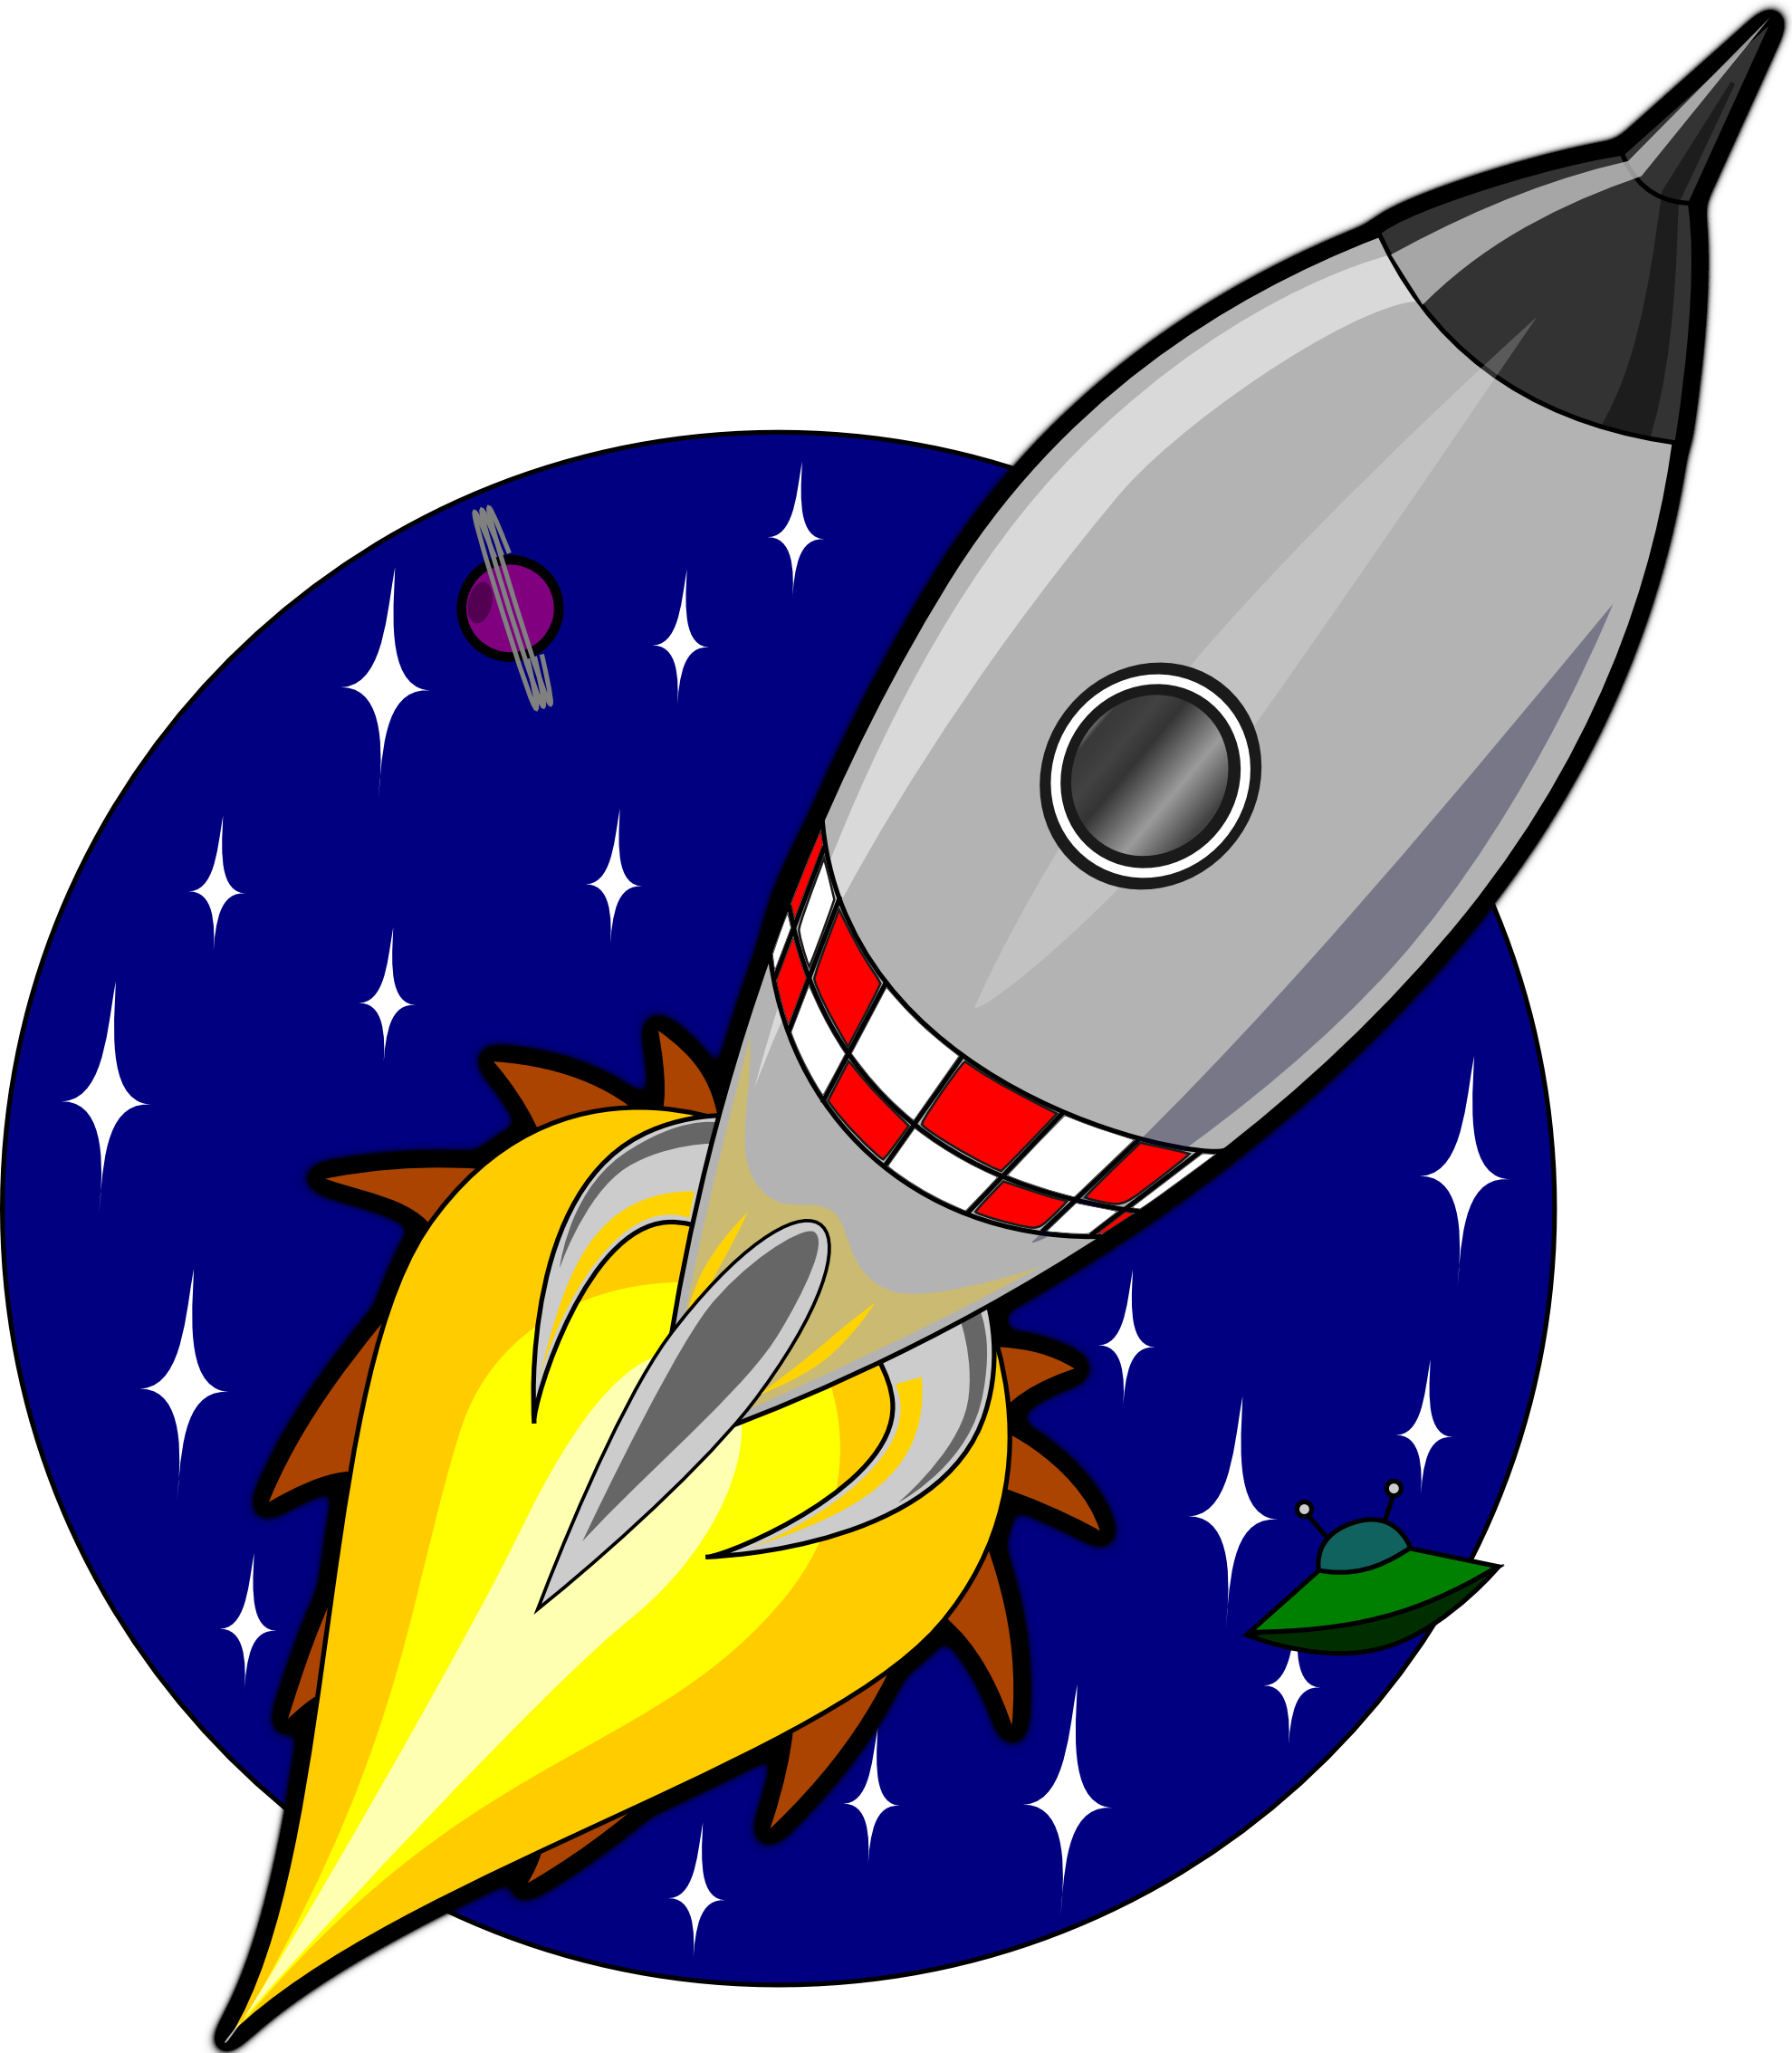 Rocket clipart cliparts and .-Rocket clipart cliparts and .-7